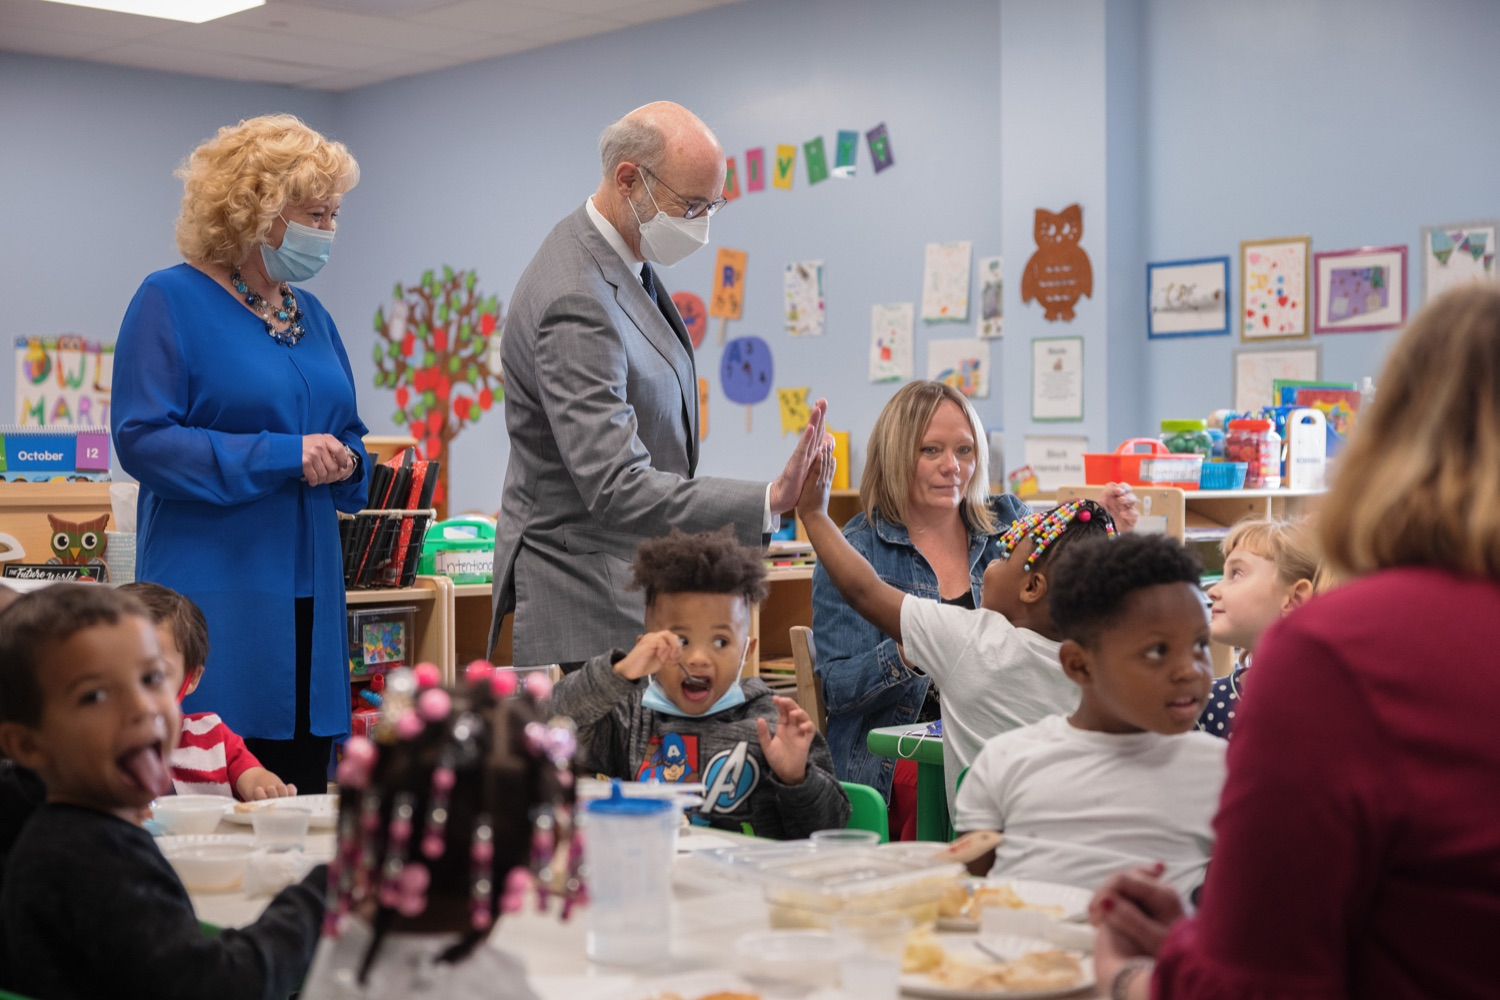 """<a href=""""https://filesource.wostreaming.net/commonwealthofpa/photo/20139_gov_childcare_dz_036.jpg"""" target=""""_blank"""">⇣Download Photo<br></a>Pennsylvania Governor Tom Wolf and Rina Irwin, CEO, Child Development Centers taking a tour of the Gilson Child Development Center.  Governor Tom Wolf today visited Gilson Child Development Center in Erie to celebrate the $30 million increase in state funding to expand early childhood learning to more than 3,200 additional young children and the $655 million available in federal funding to stabilize childcare providers during the pandemic.  Erie, PA  October 12, 2021"""